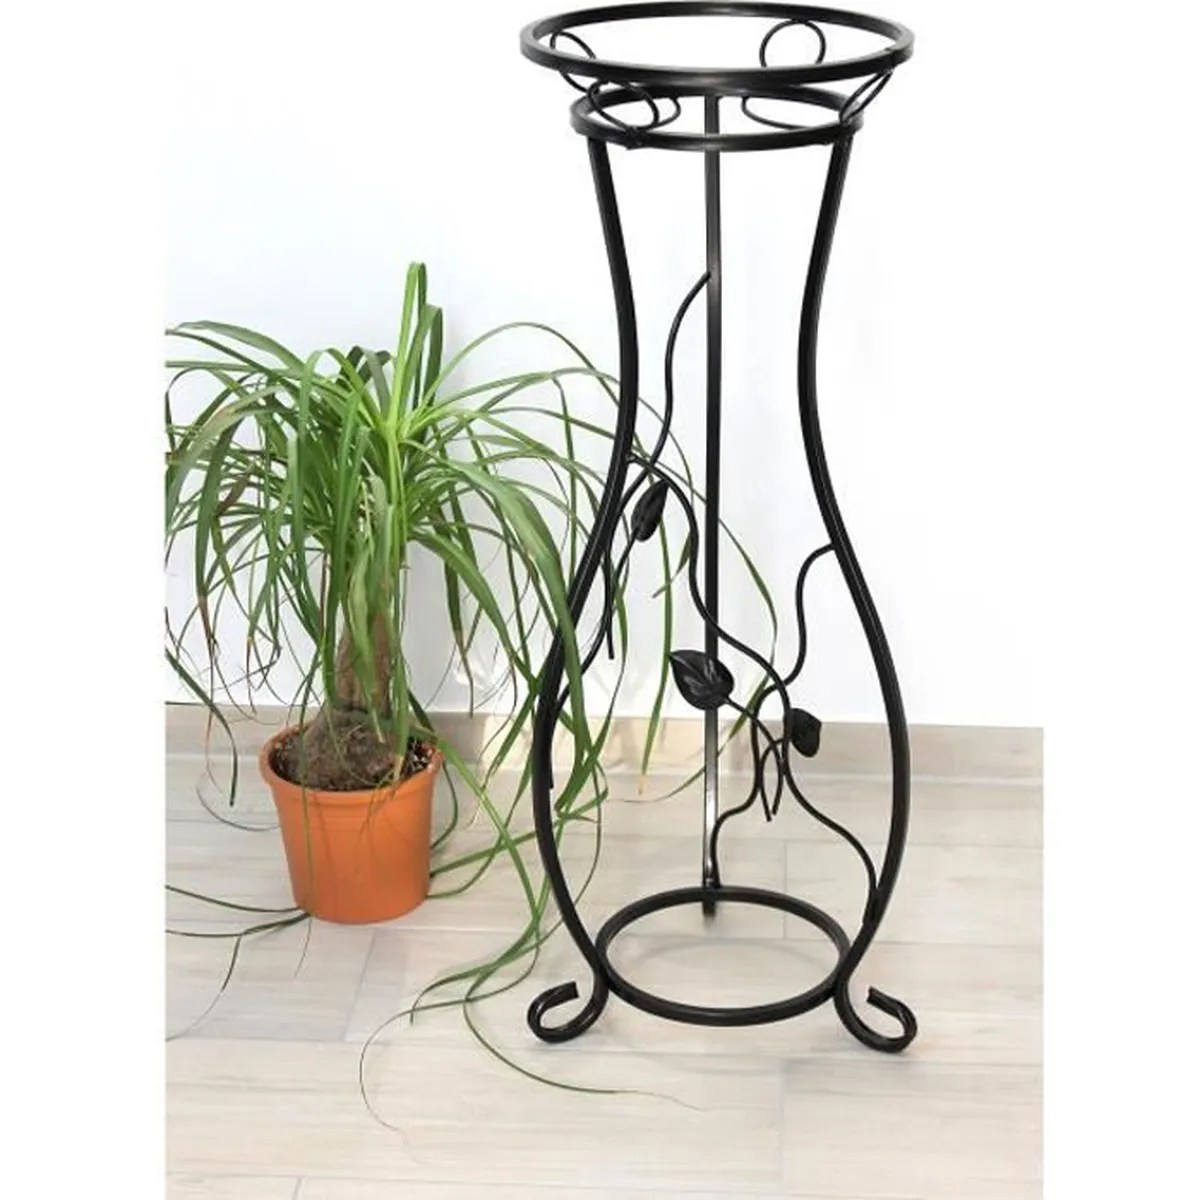 Sellette Design Verre Sellette Design Verre Bouts De Canapes Tables Et Chaises